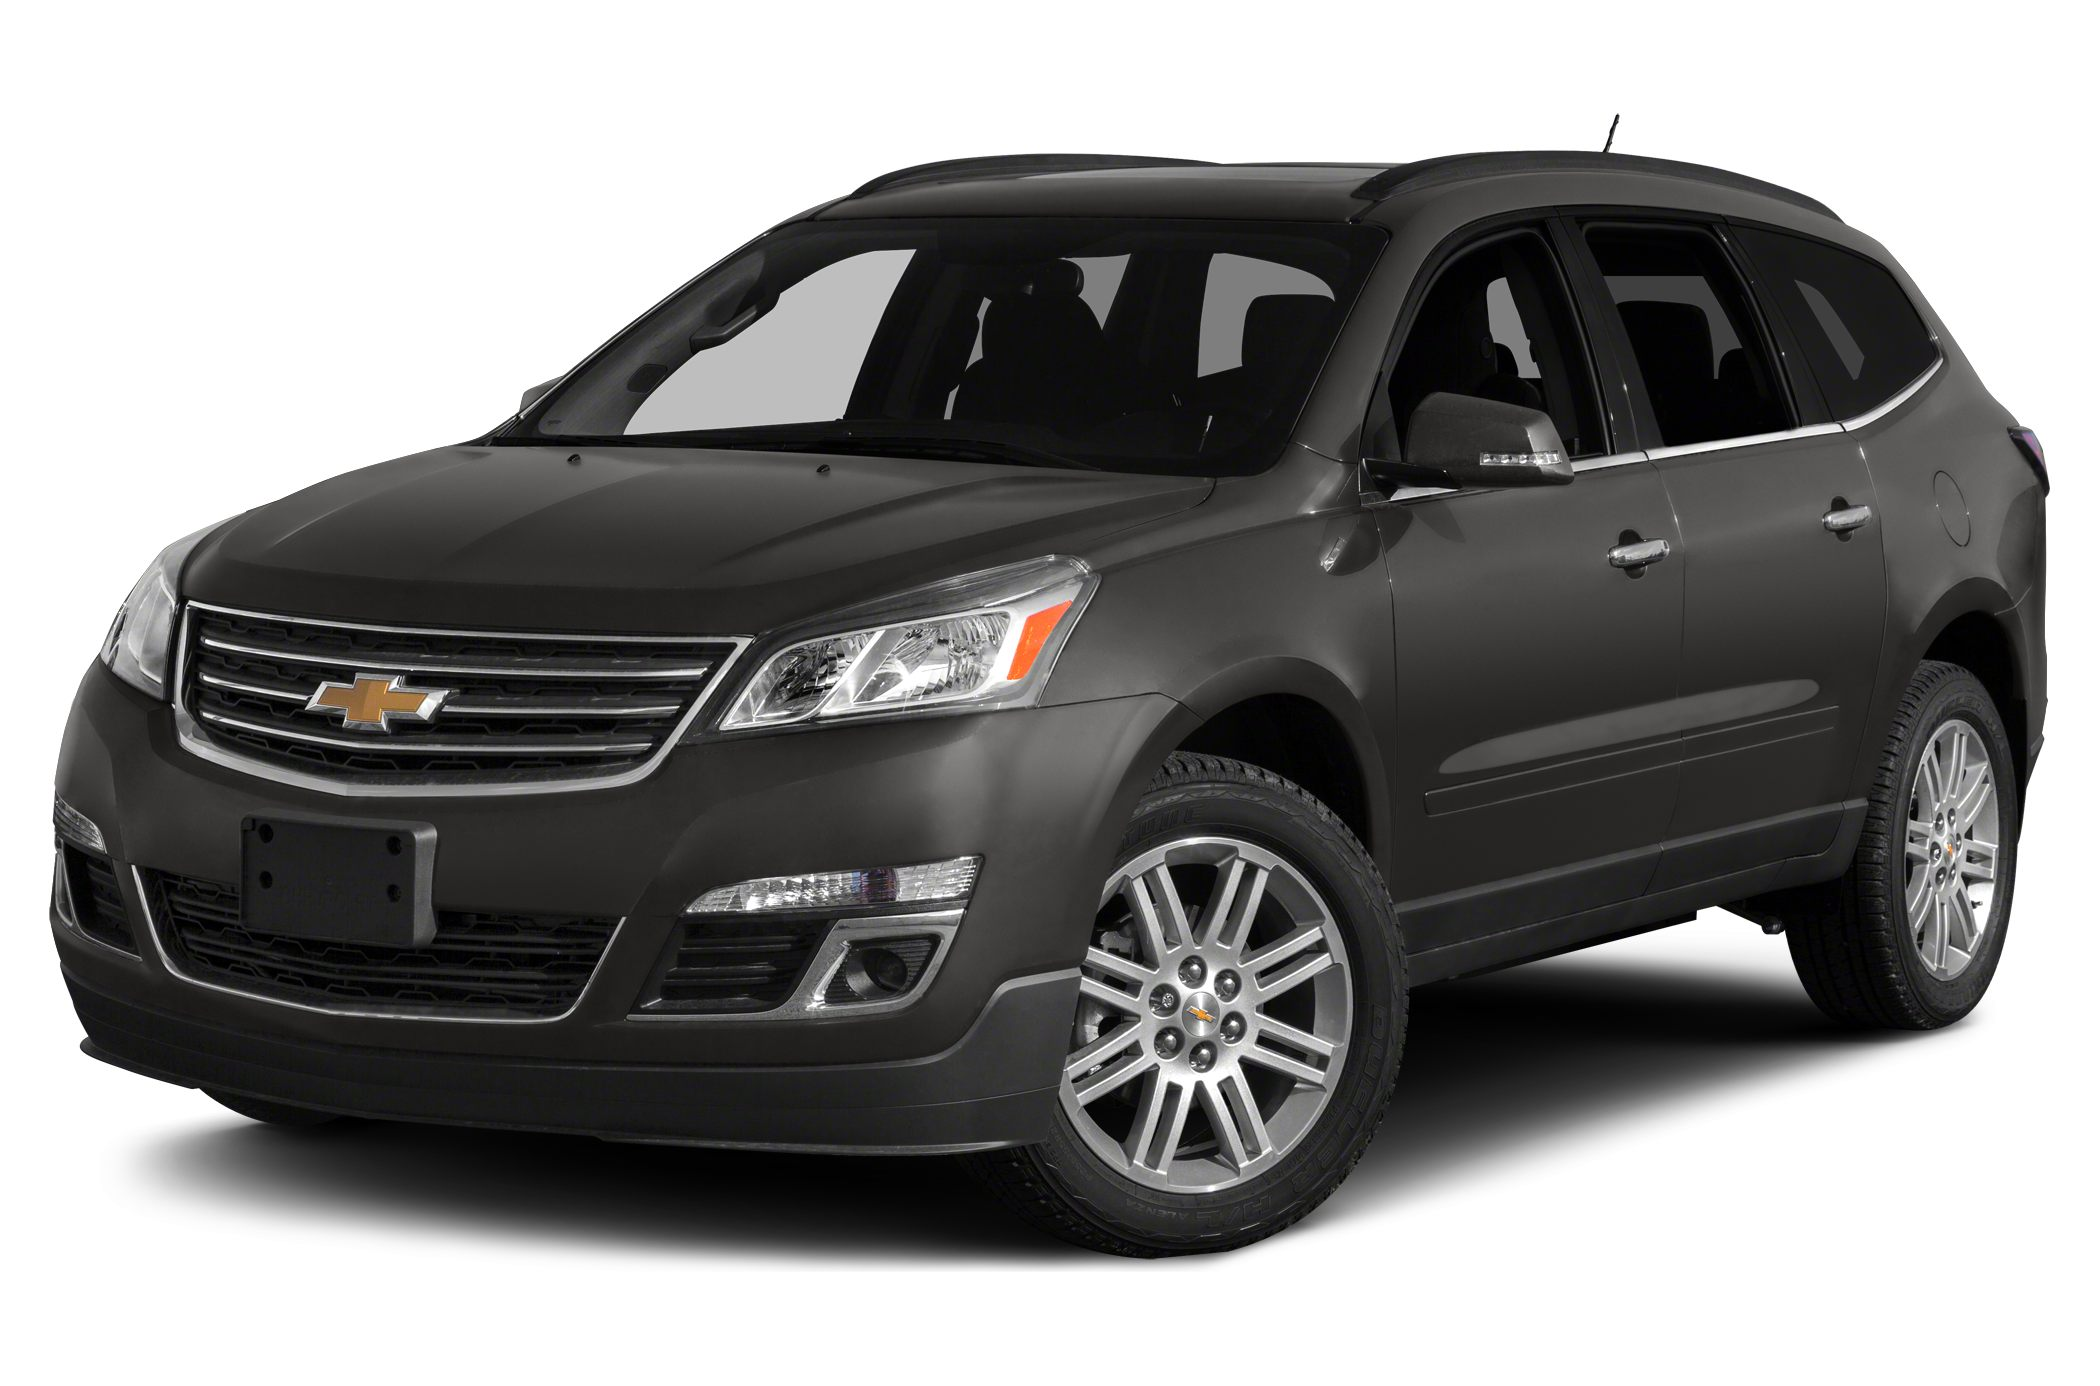 2015 Chevrolet Traverse 2LT SUV for sale in Battle Creek for $38,301 with 0 miles.